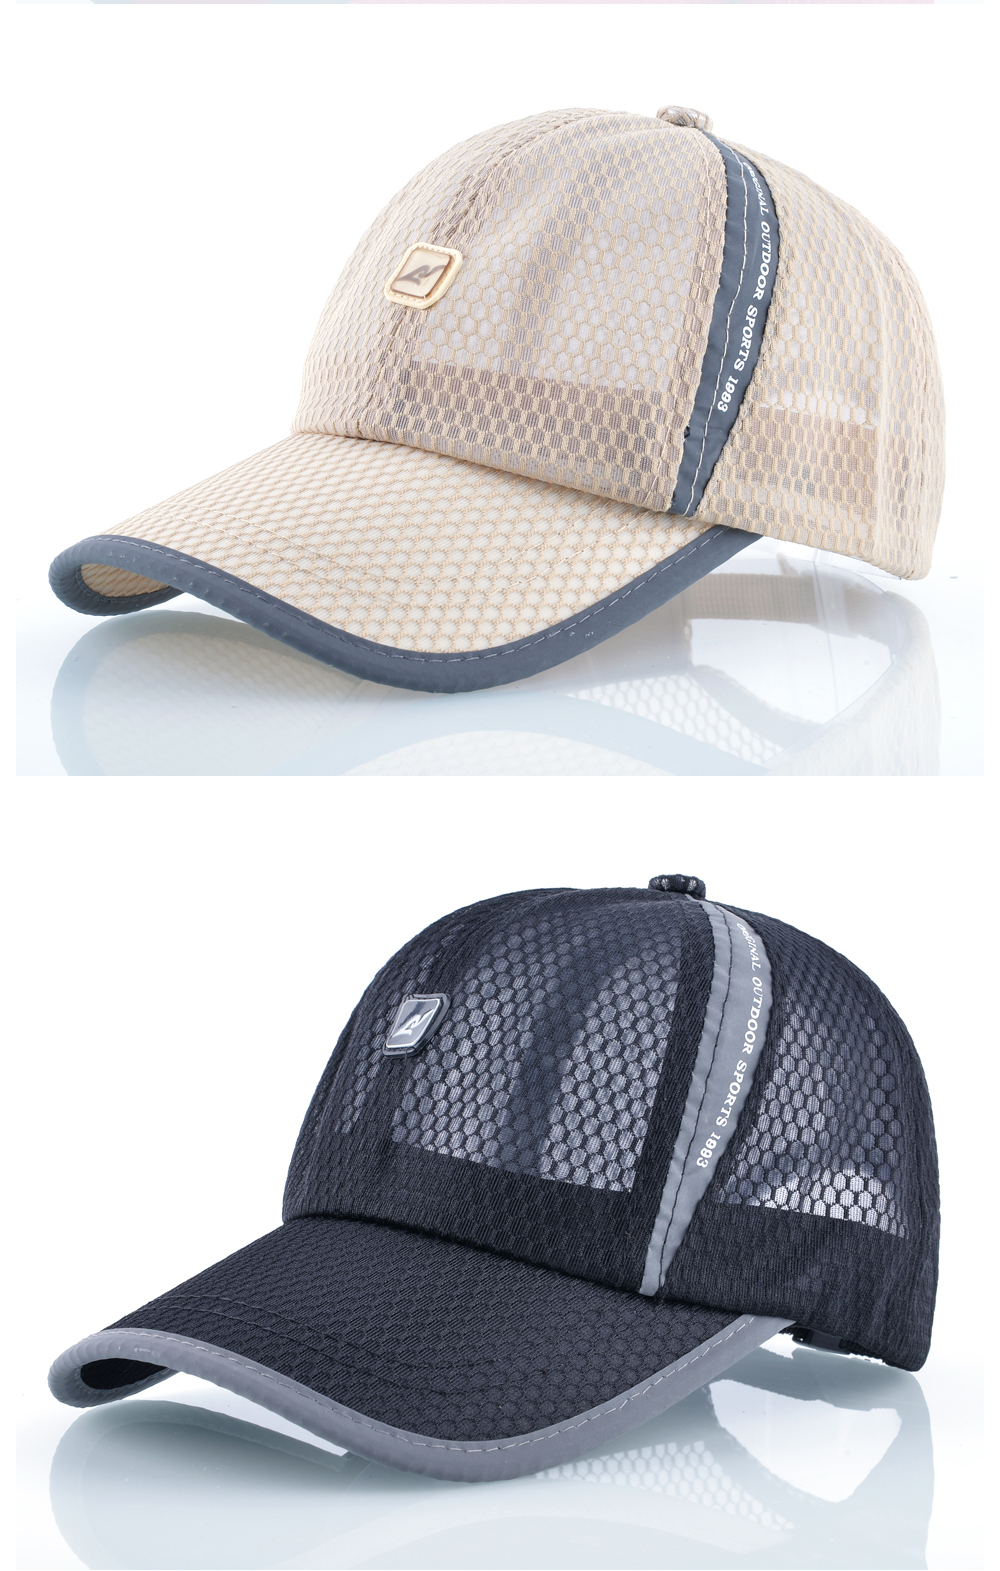 Open Mesh Breathable Baseball Cap - Beige Cap and Black Cap Front Angle Detail Views